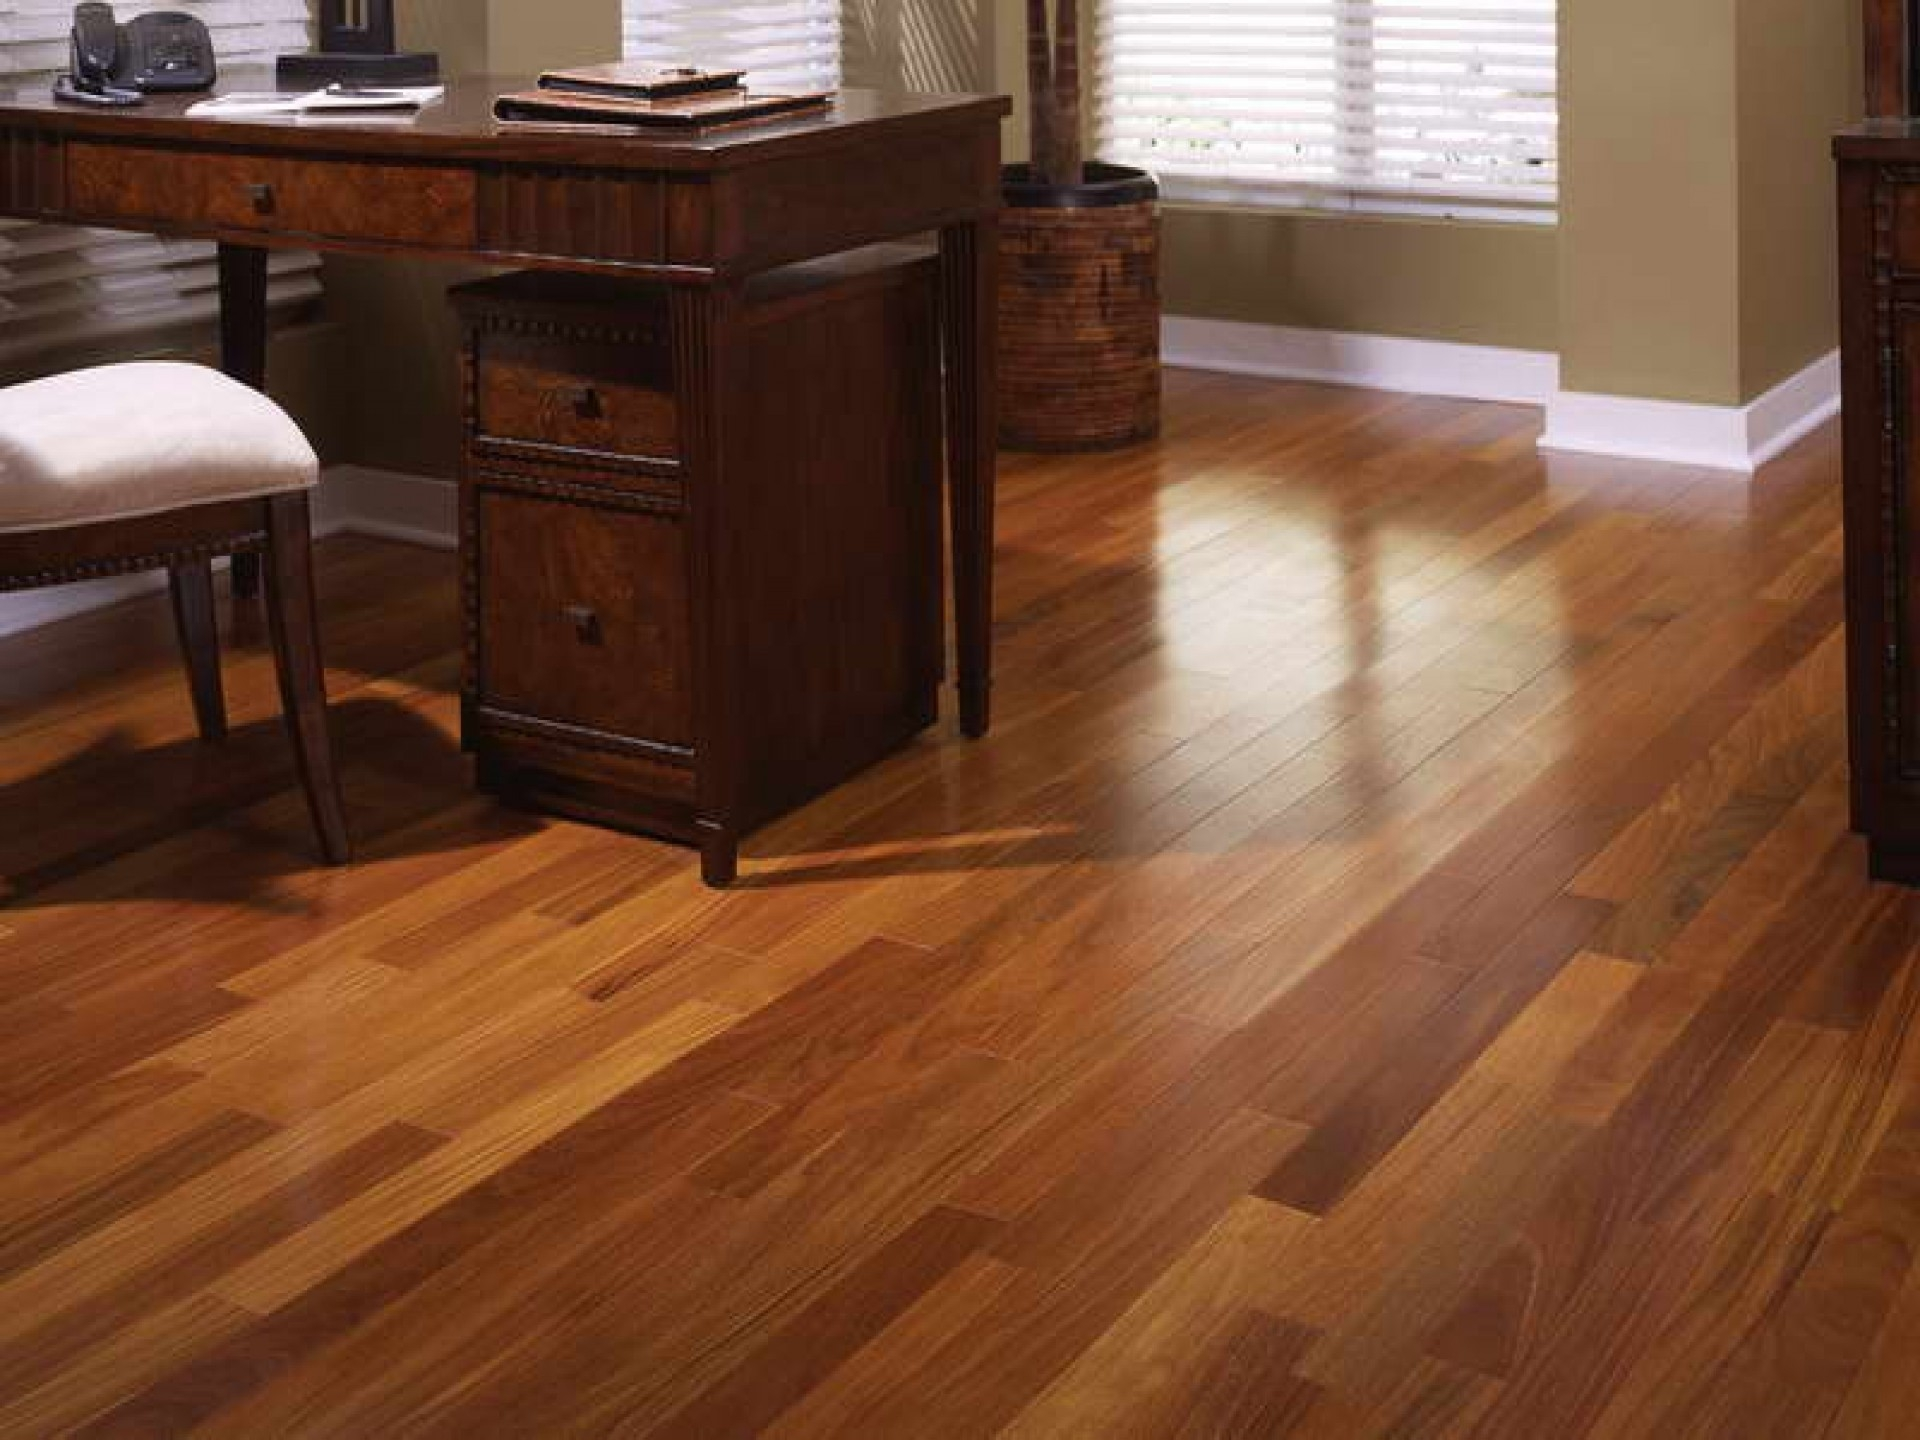 Advantages And Disadvantages Of Engineered Wood Flooring